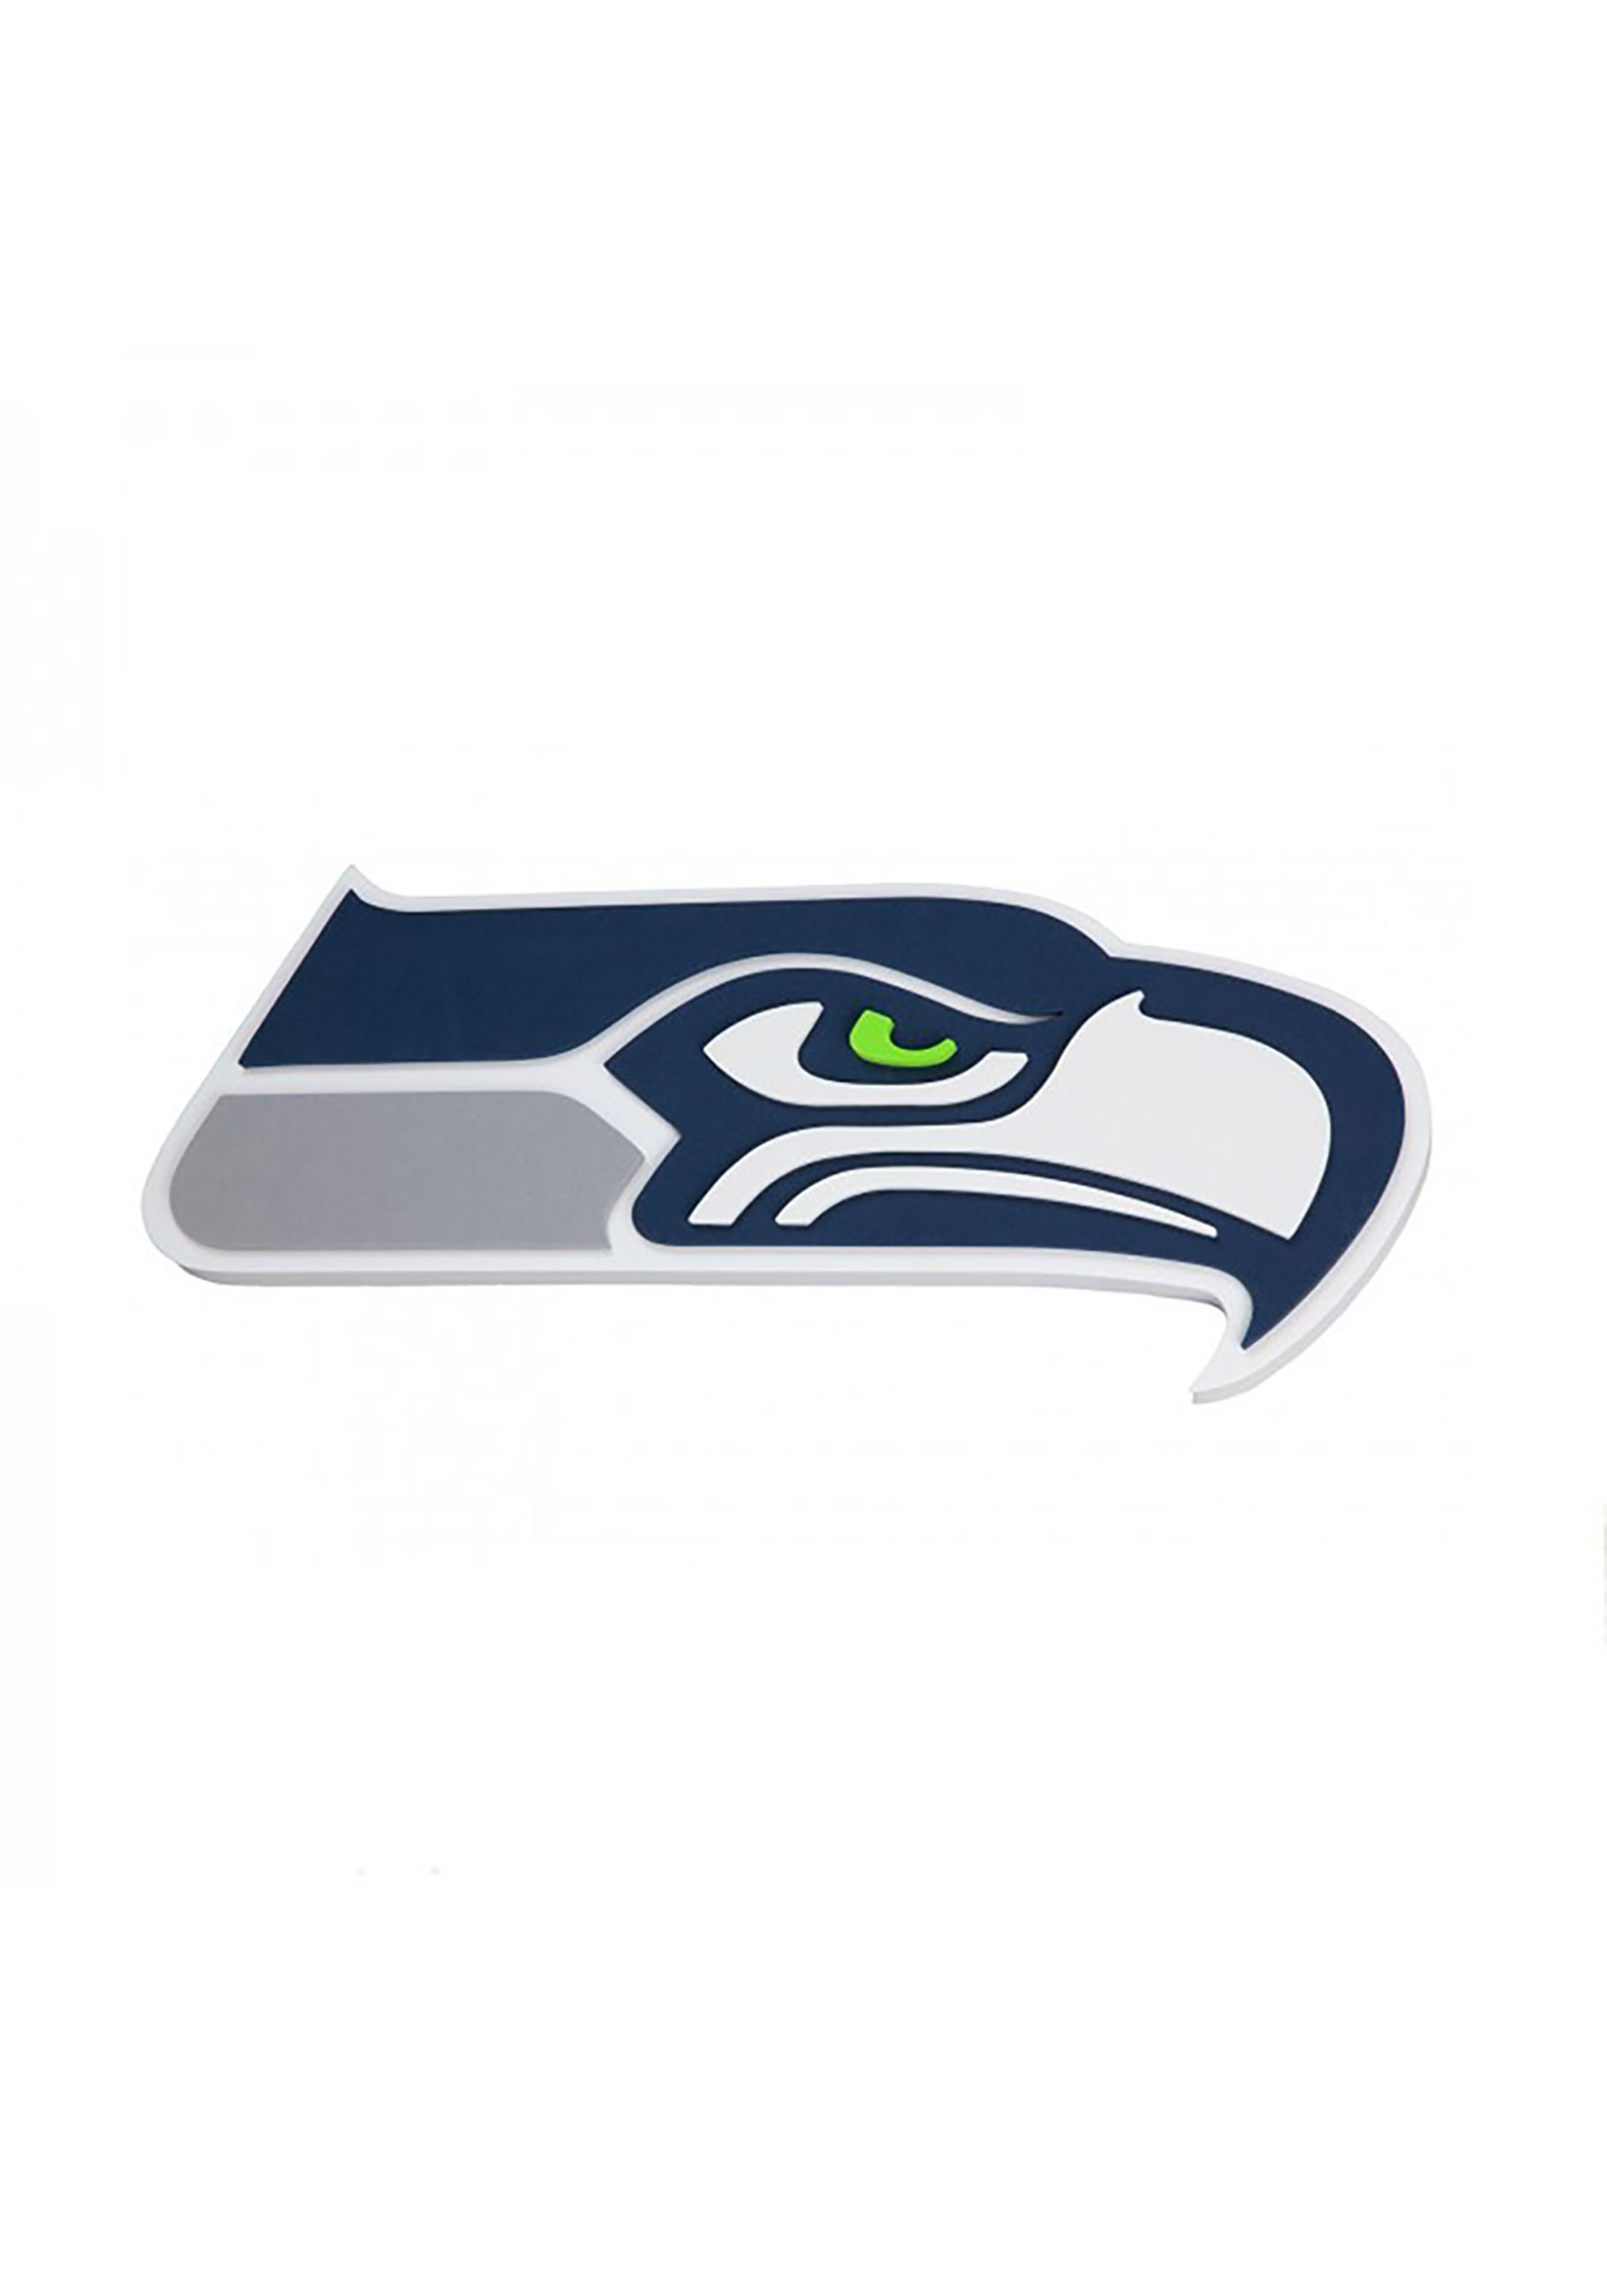 NFL Seattle Seahawks Logo Foam Sign.